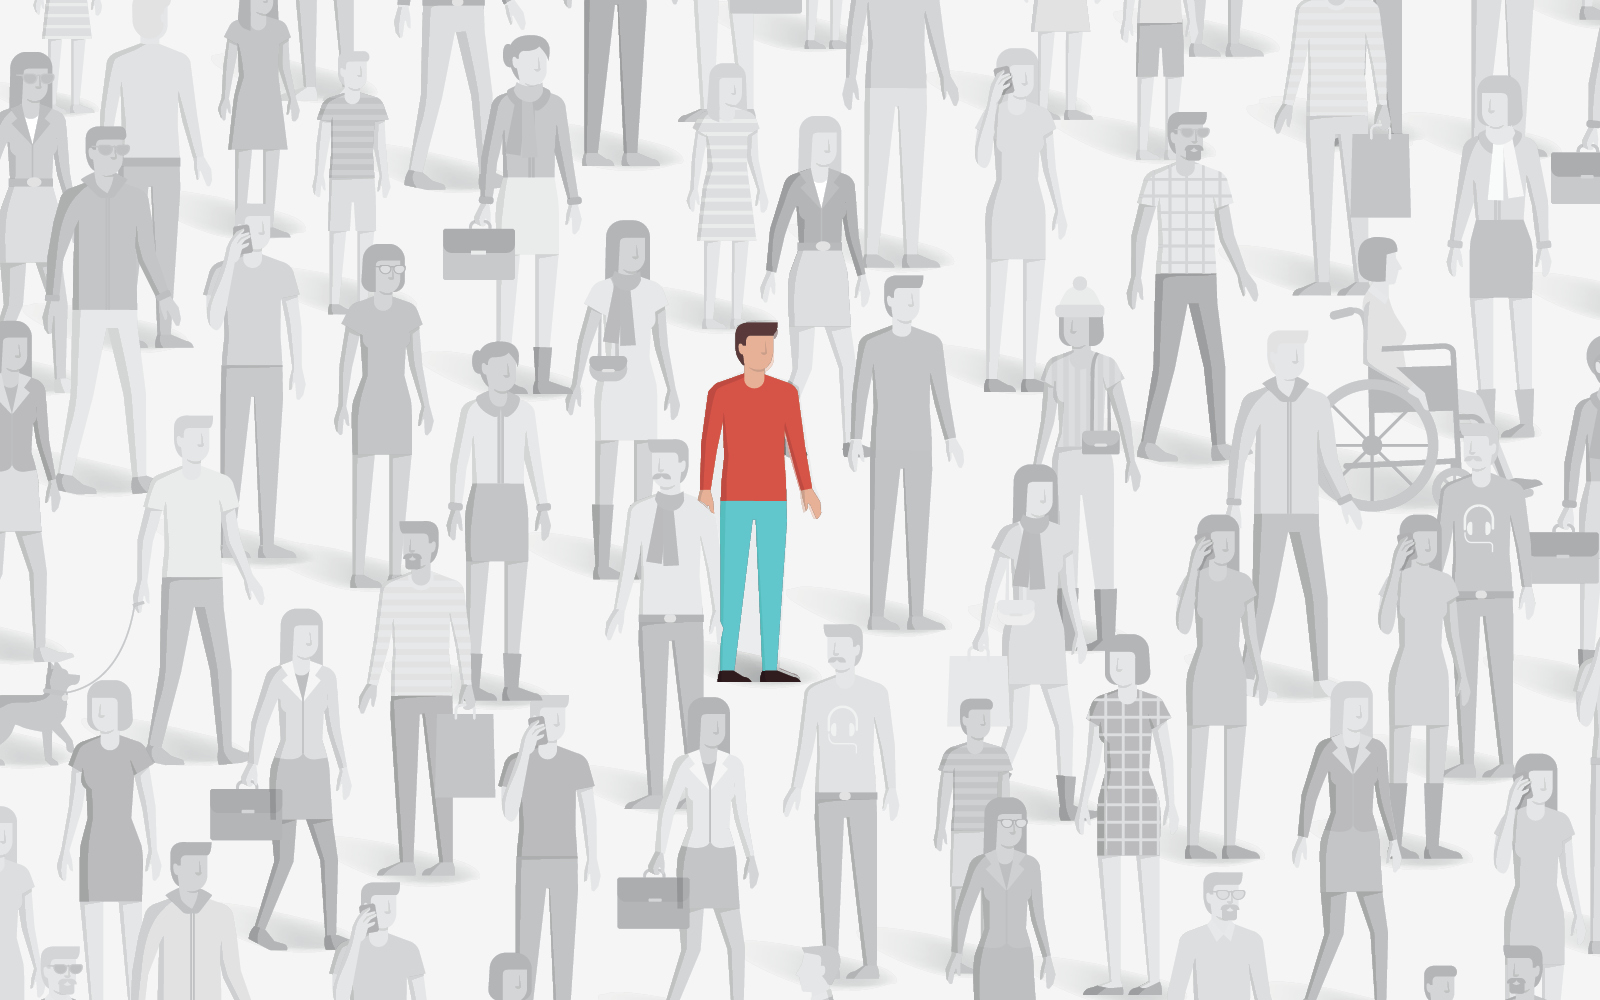 A drawing of a man in a red shirt amongst a crowd of gray people.